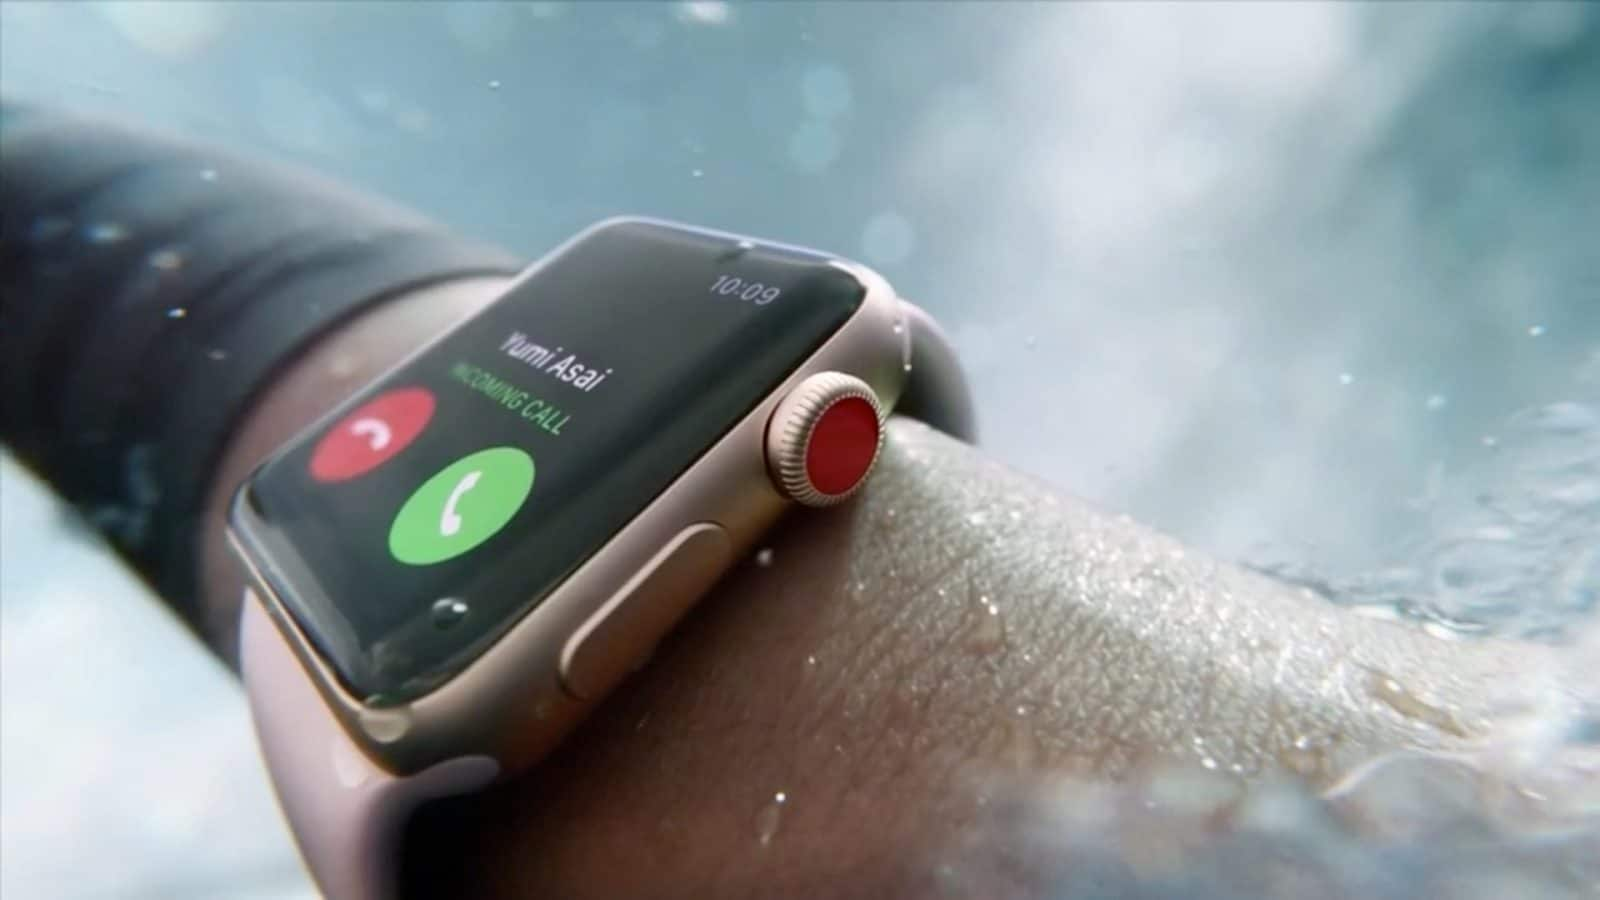 Apple Watch com conectividade celular (4G/LTE)